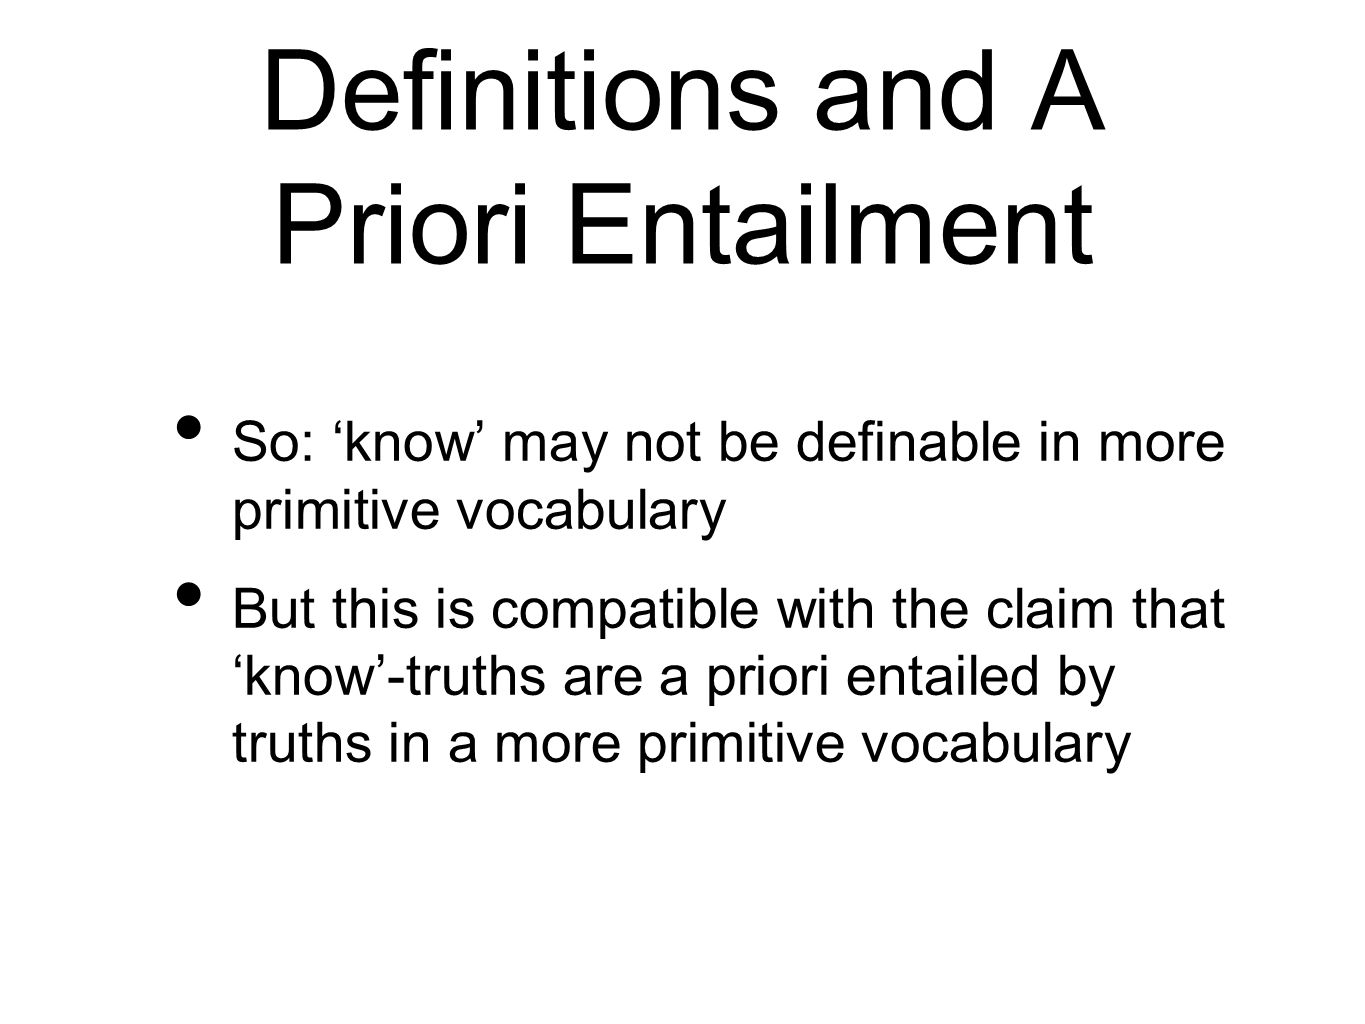 Definitions and A Priori Entailment So: know may not be definable in more primitive vocabulary But this is compatible with the claim that know-truths